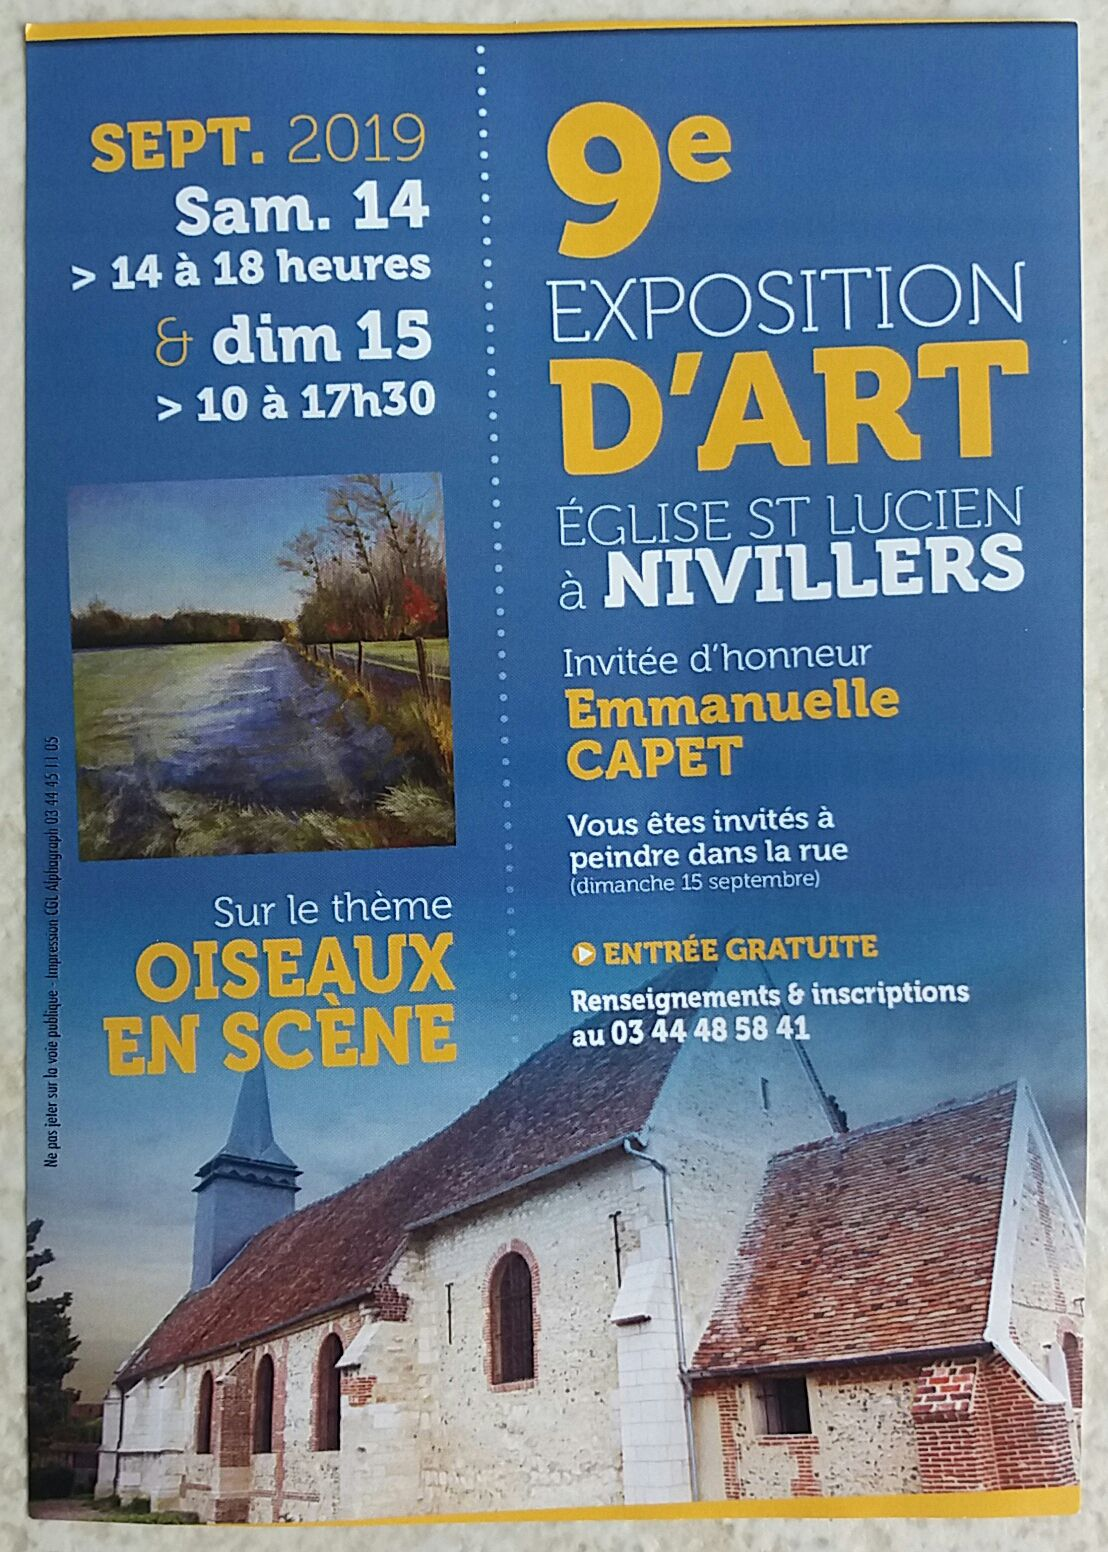 Expostions